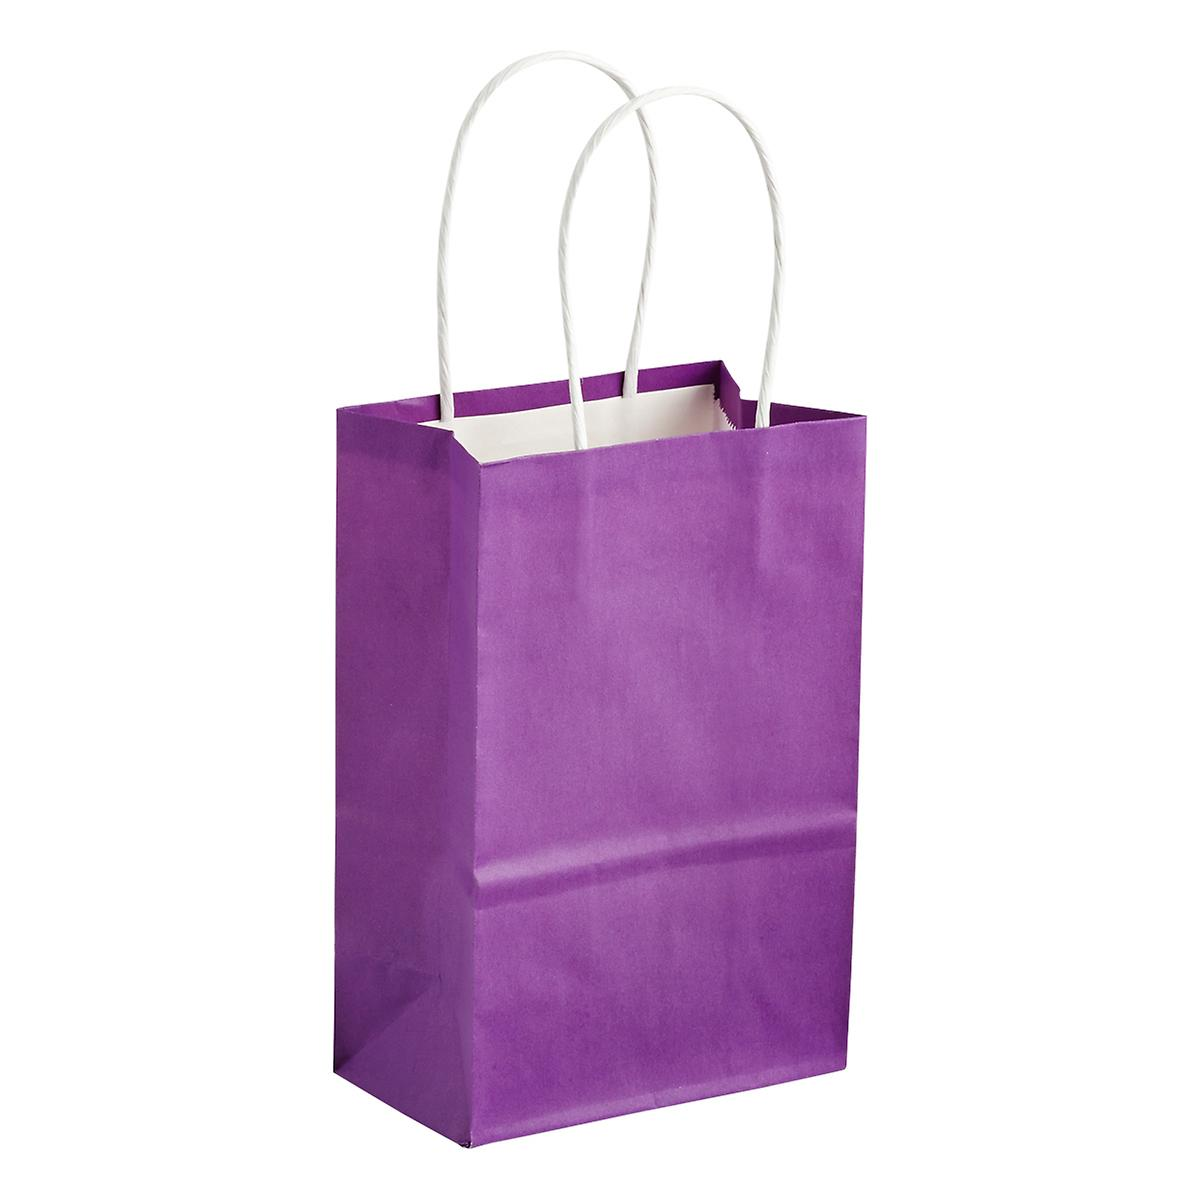 Shipping Container Bag Shop: Small Purple Gift Bag